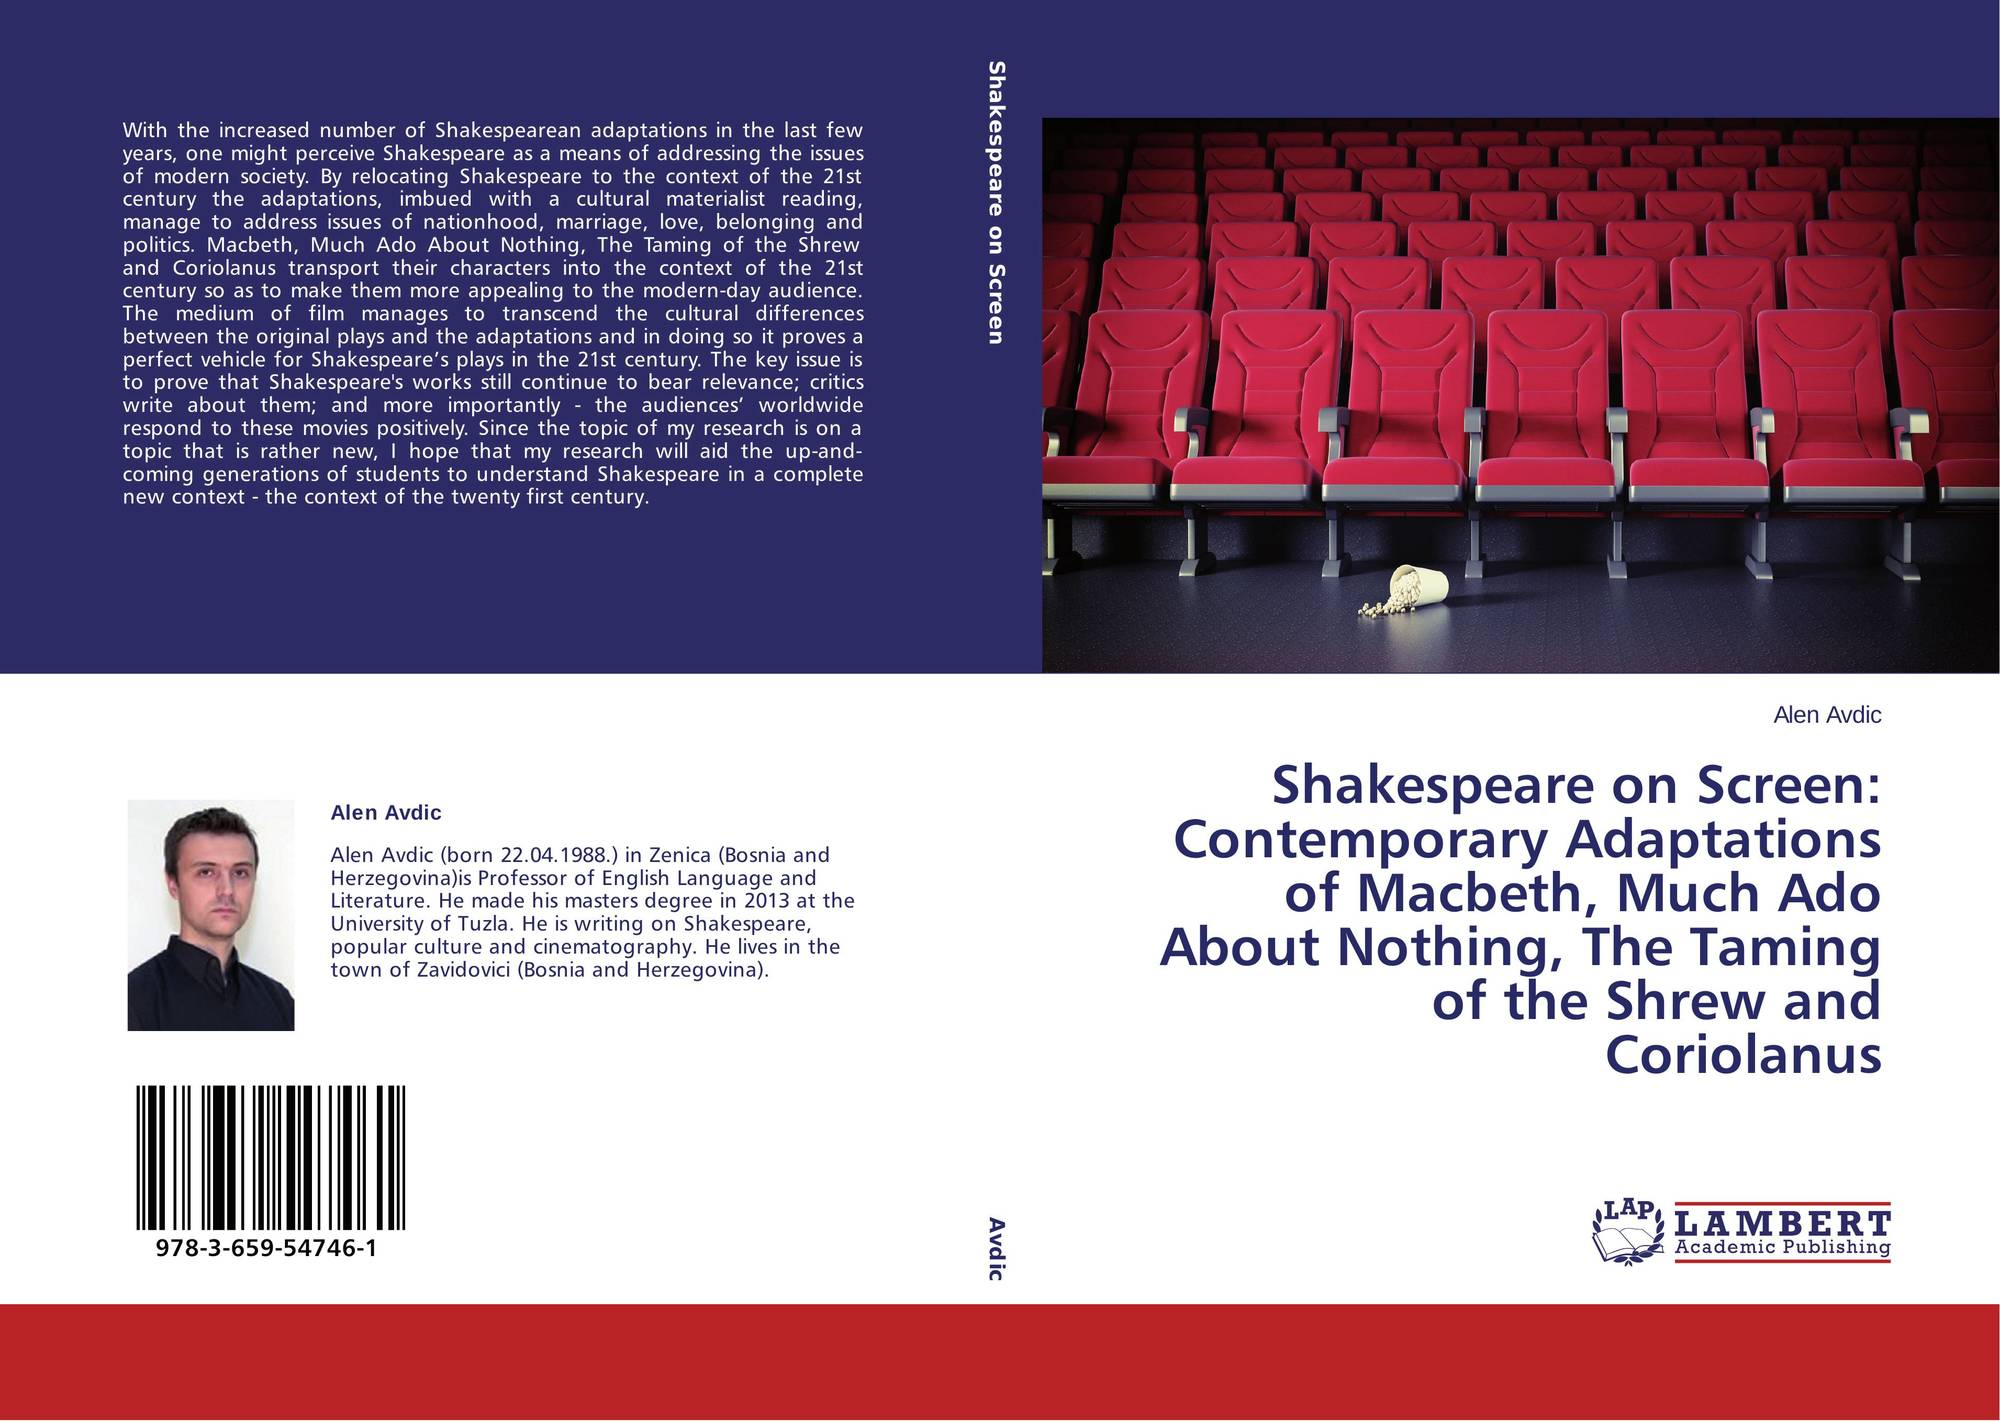 shakespeare on screen contemporary adaptations of macbeth much ado about nothing the taming